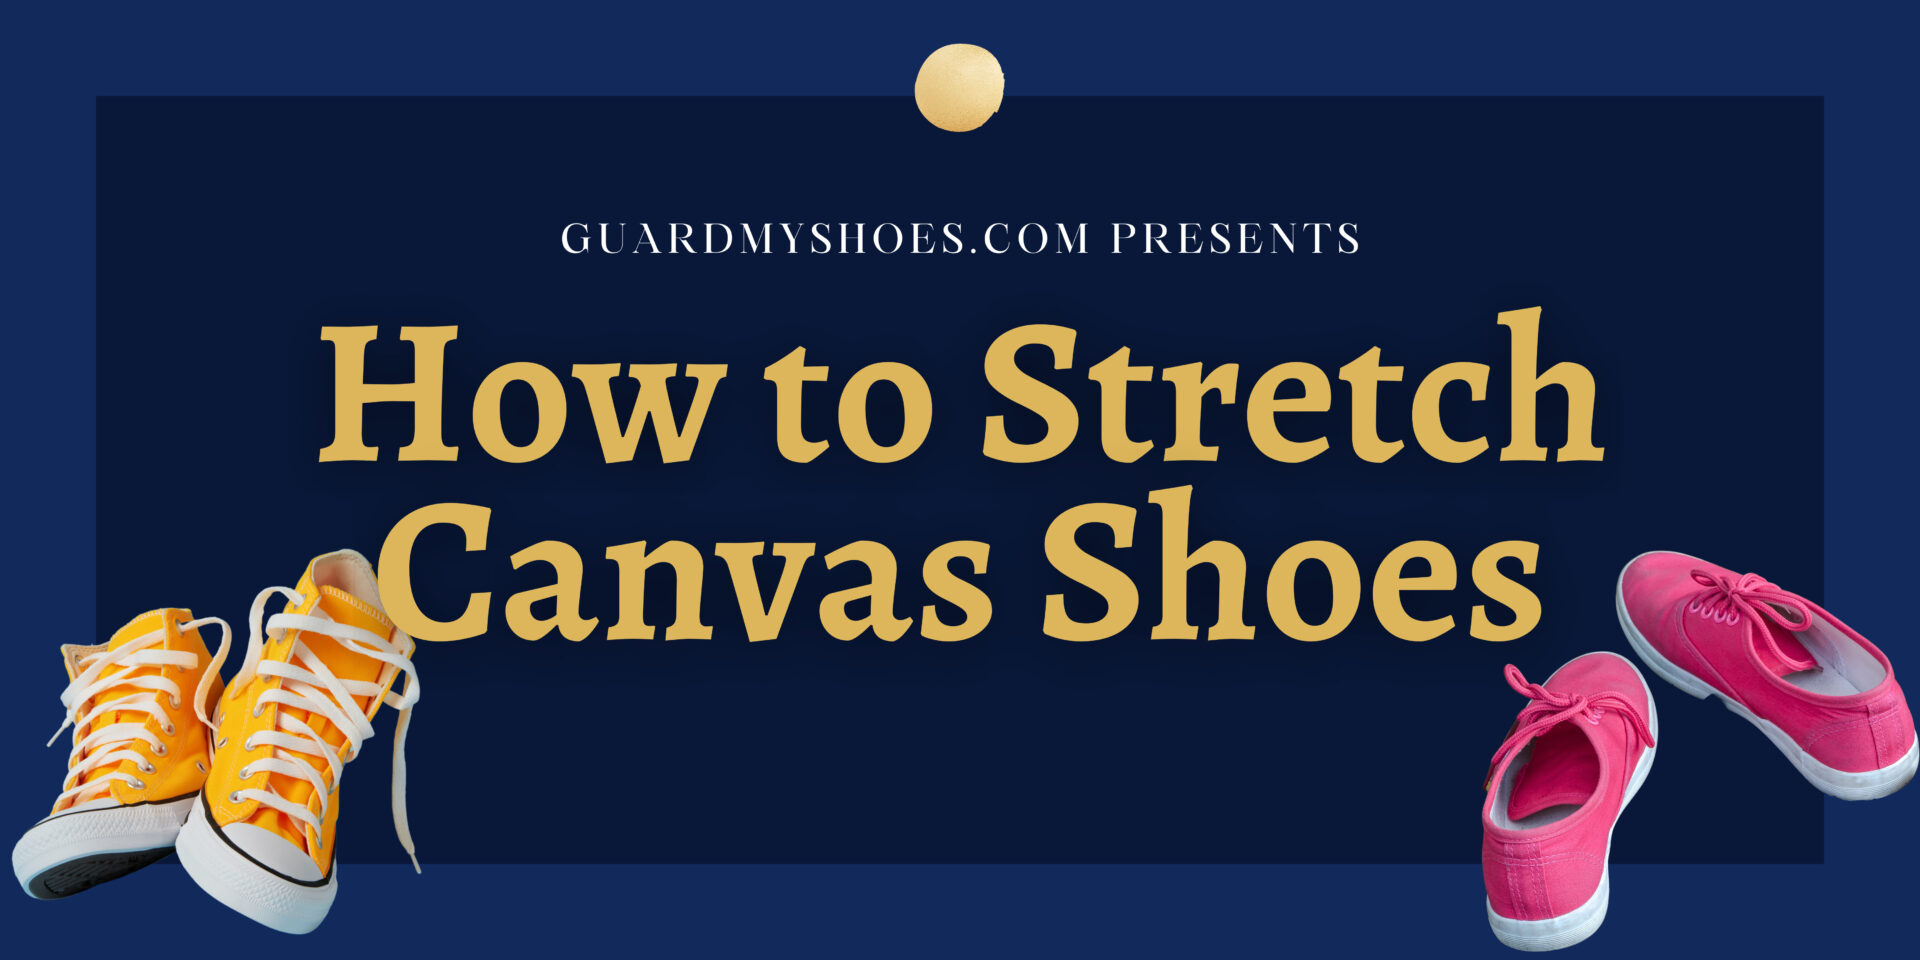 How to Stretch Canvas Shoes?